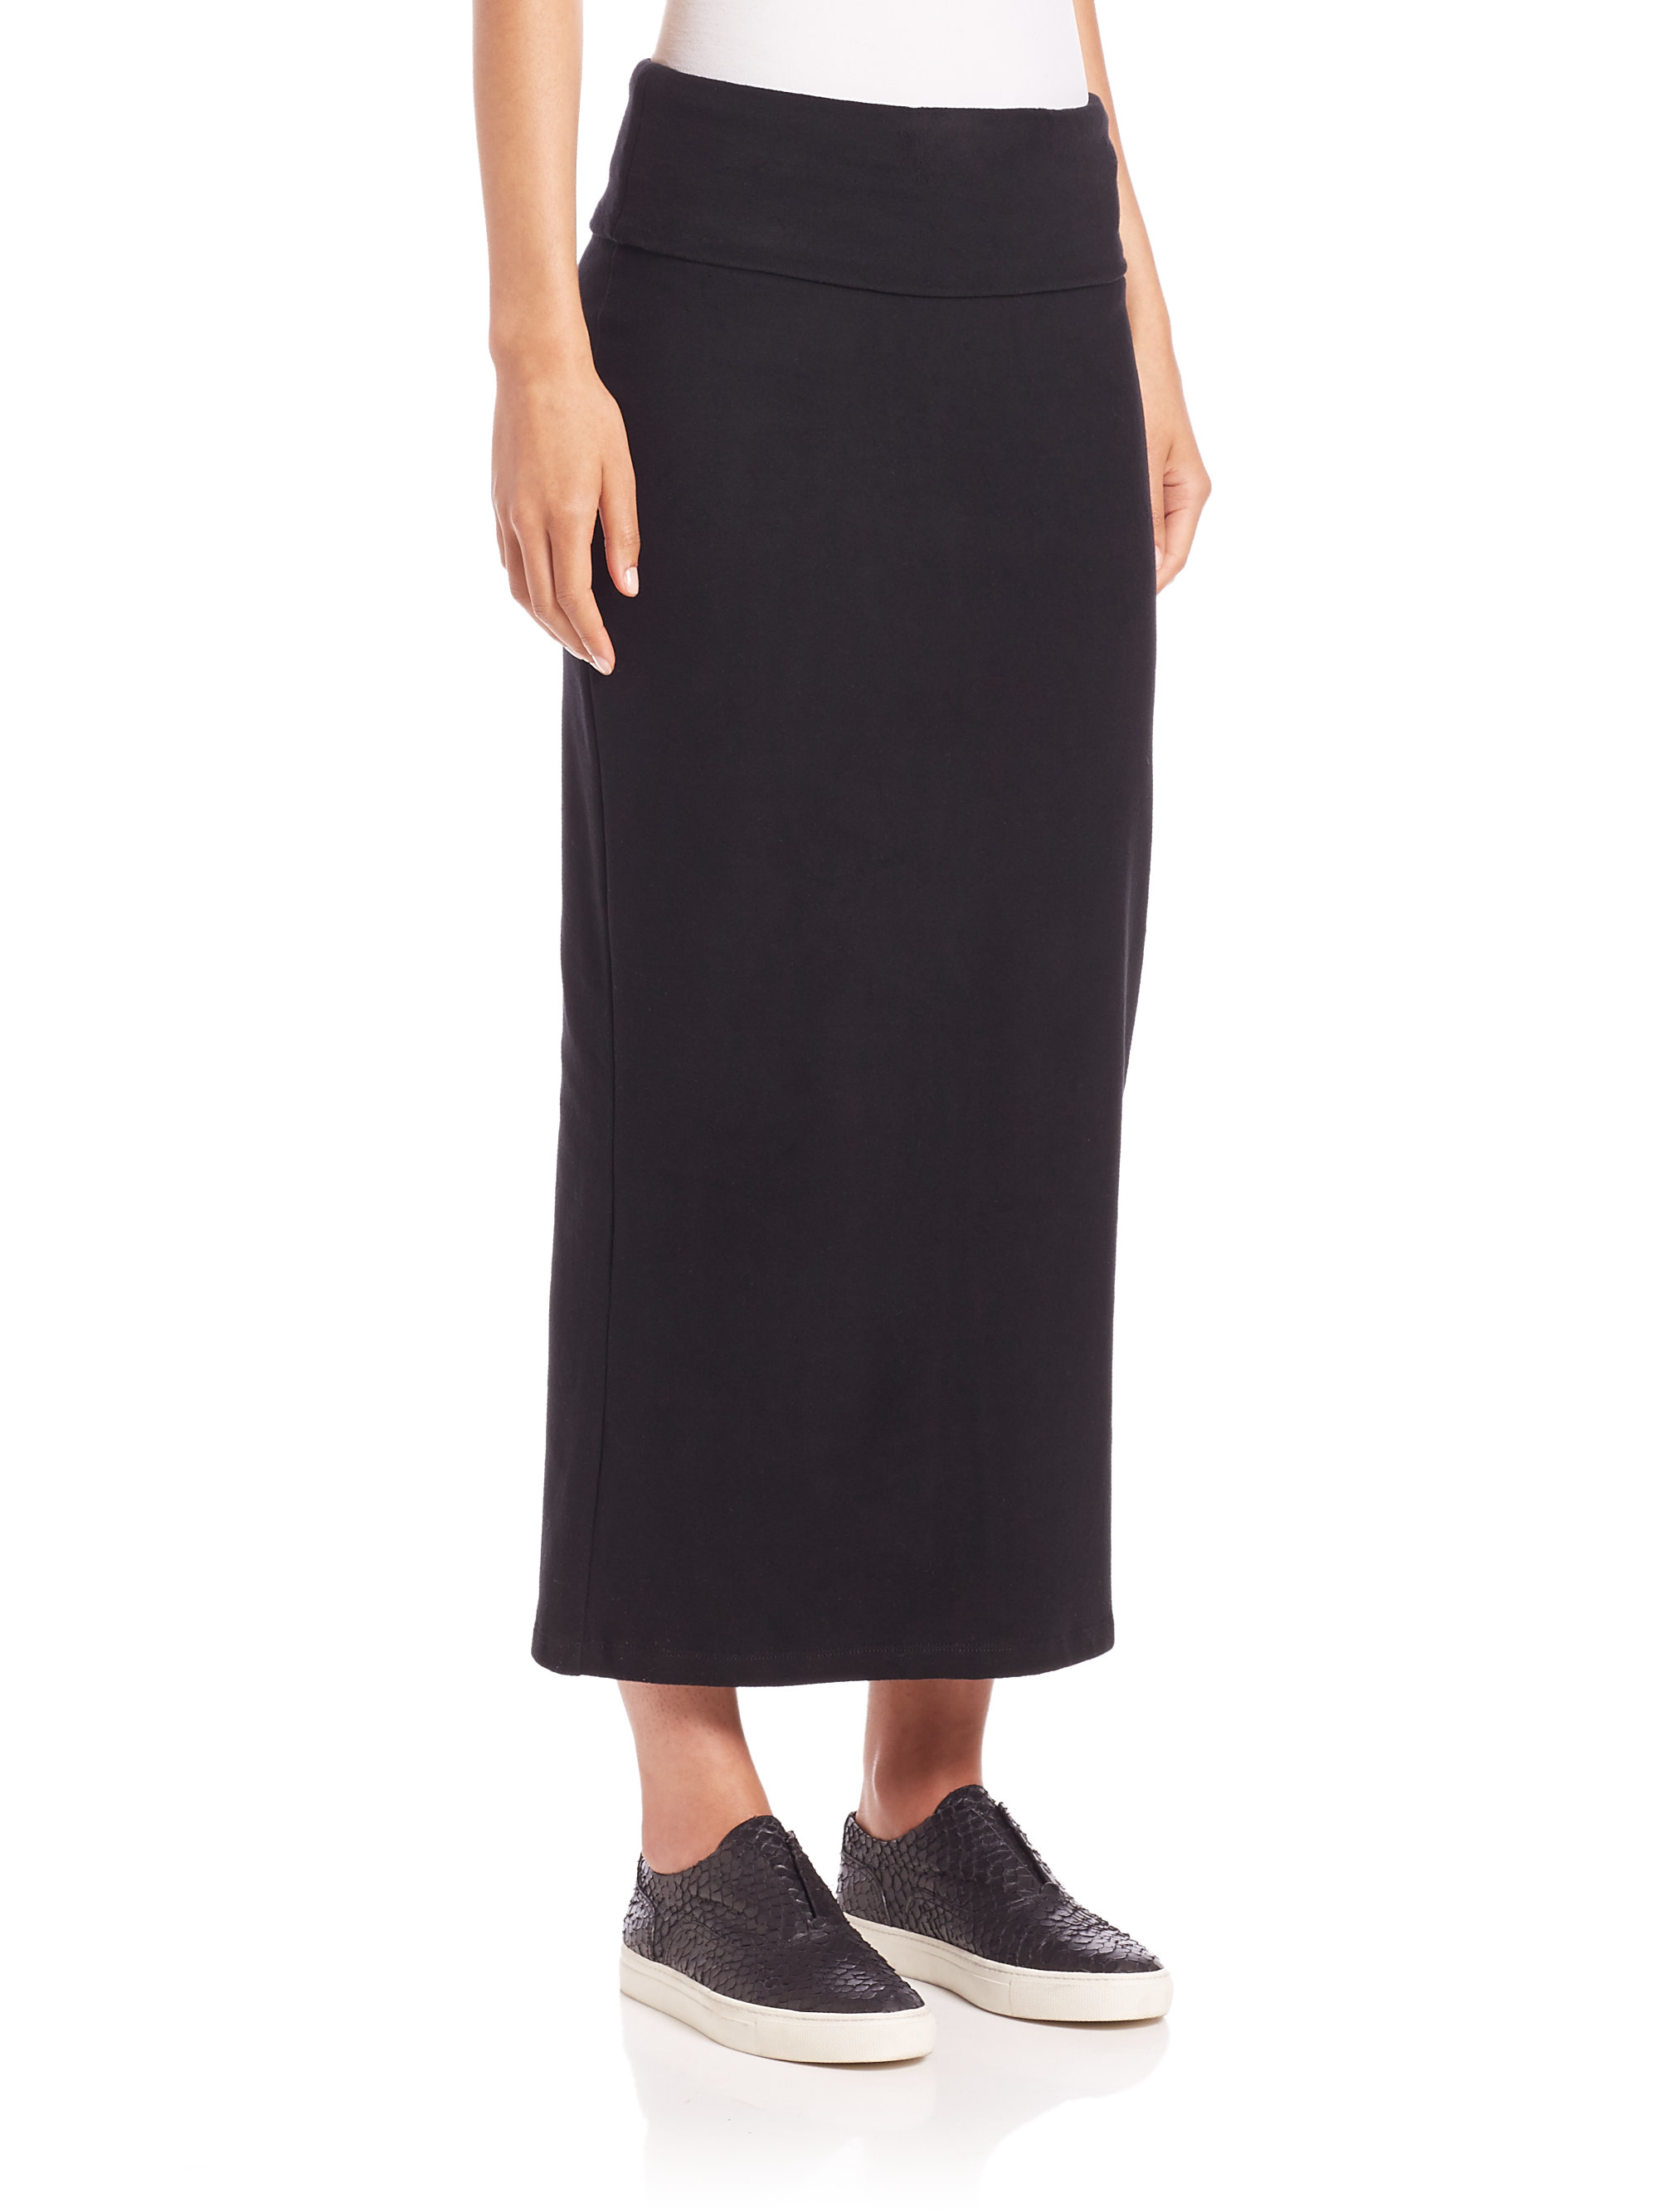 James perse Knit Maxi Pencil Skirt in Black | Lyst